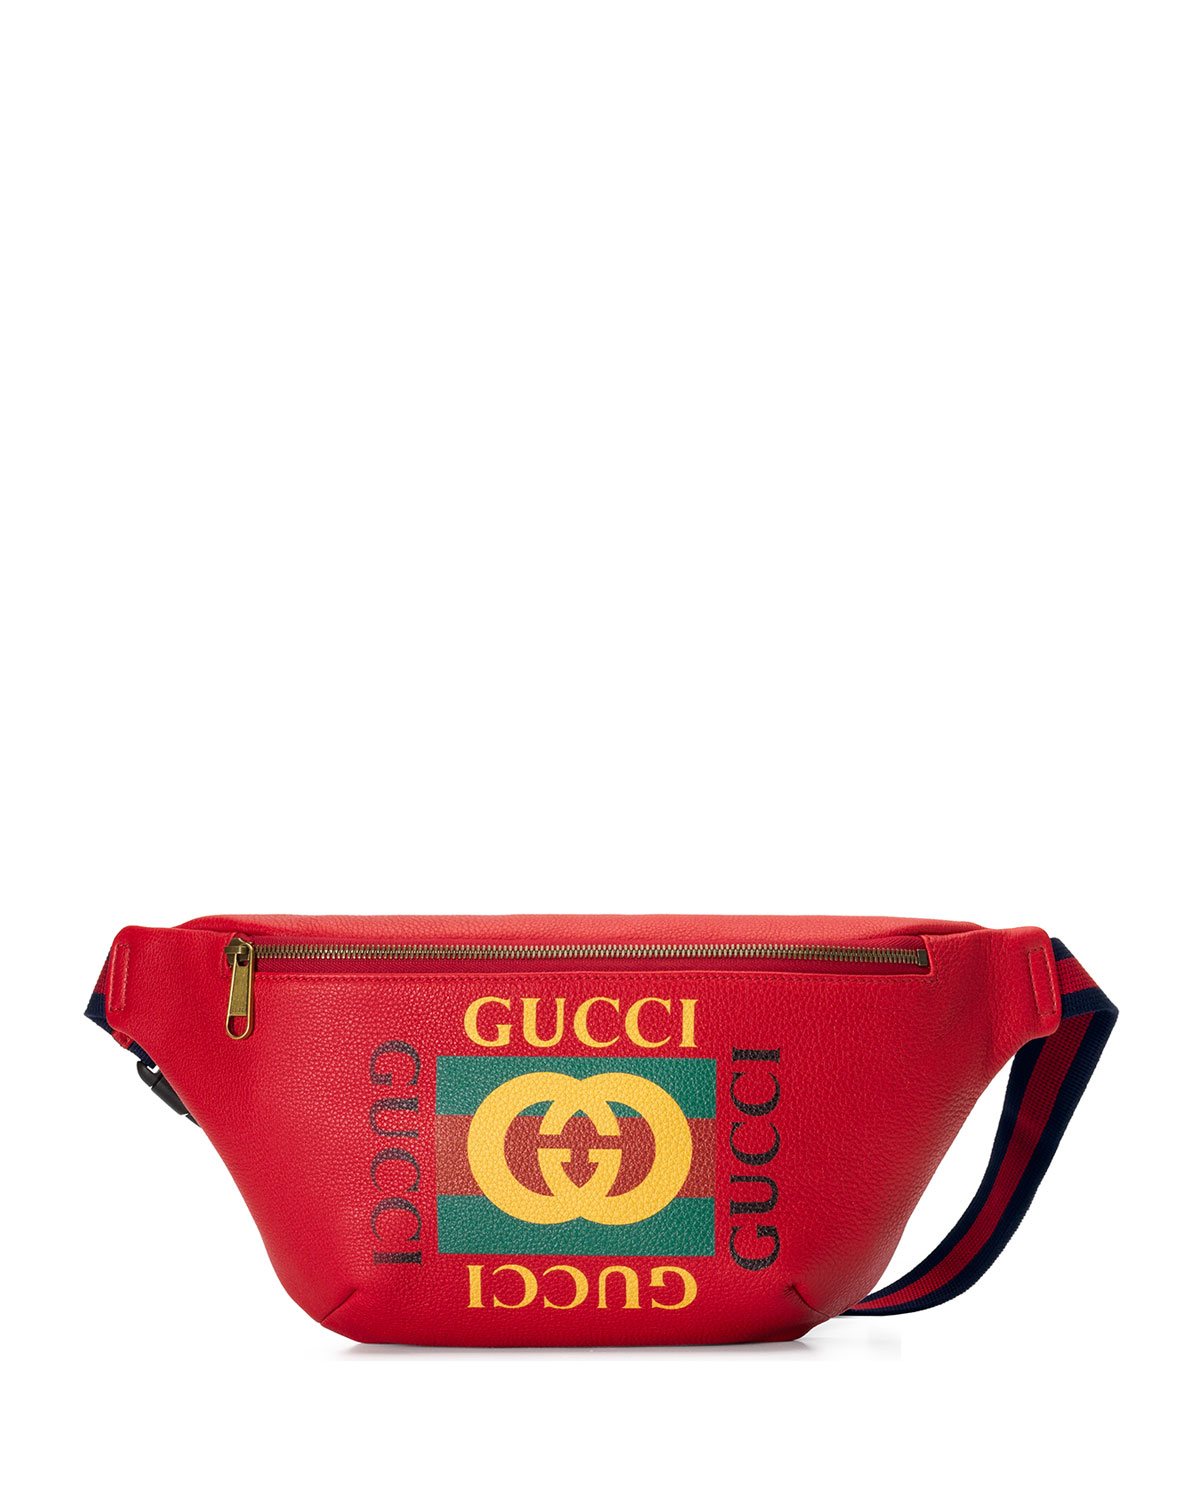 e7eba176963 Gucci Retro GG Logo Belt Bag Fanny Pack